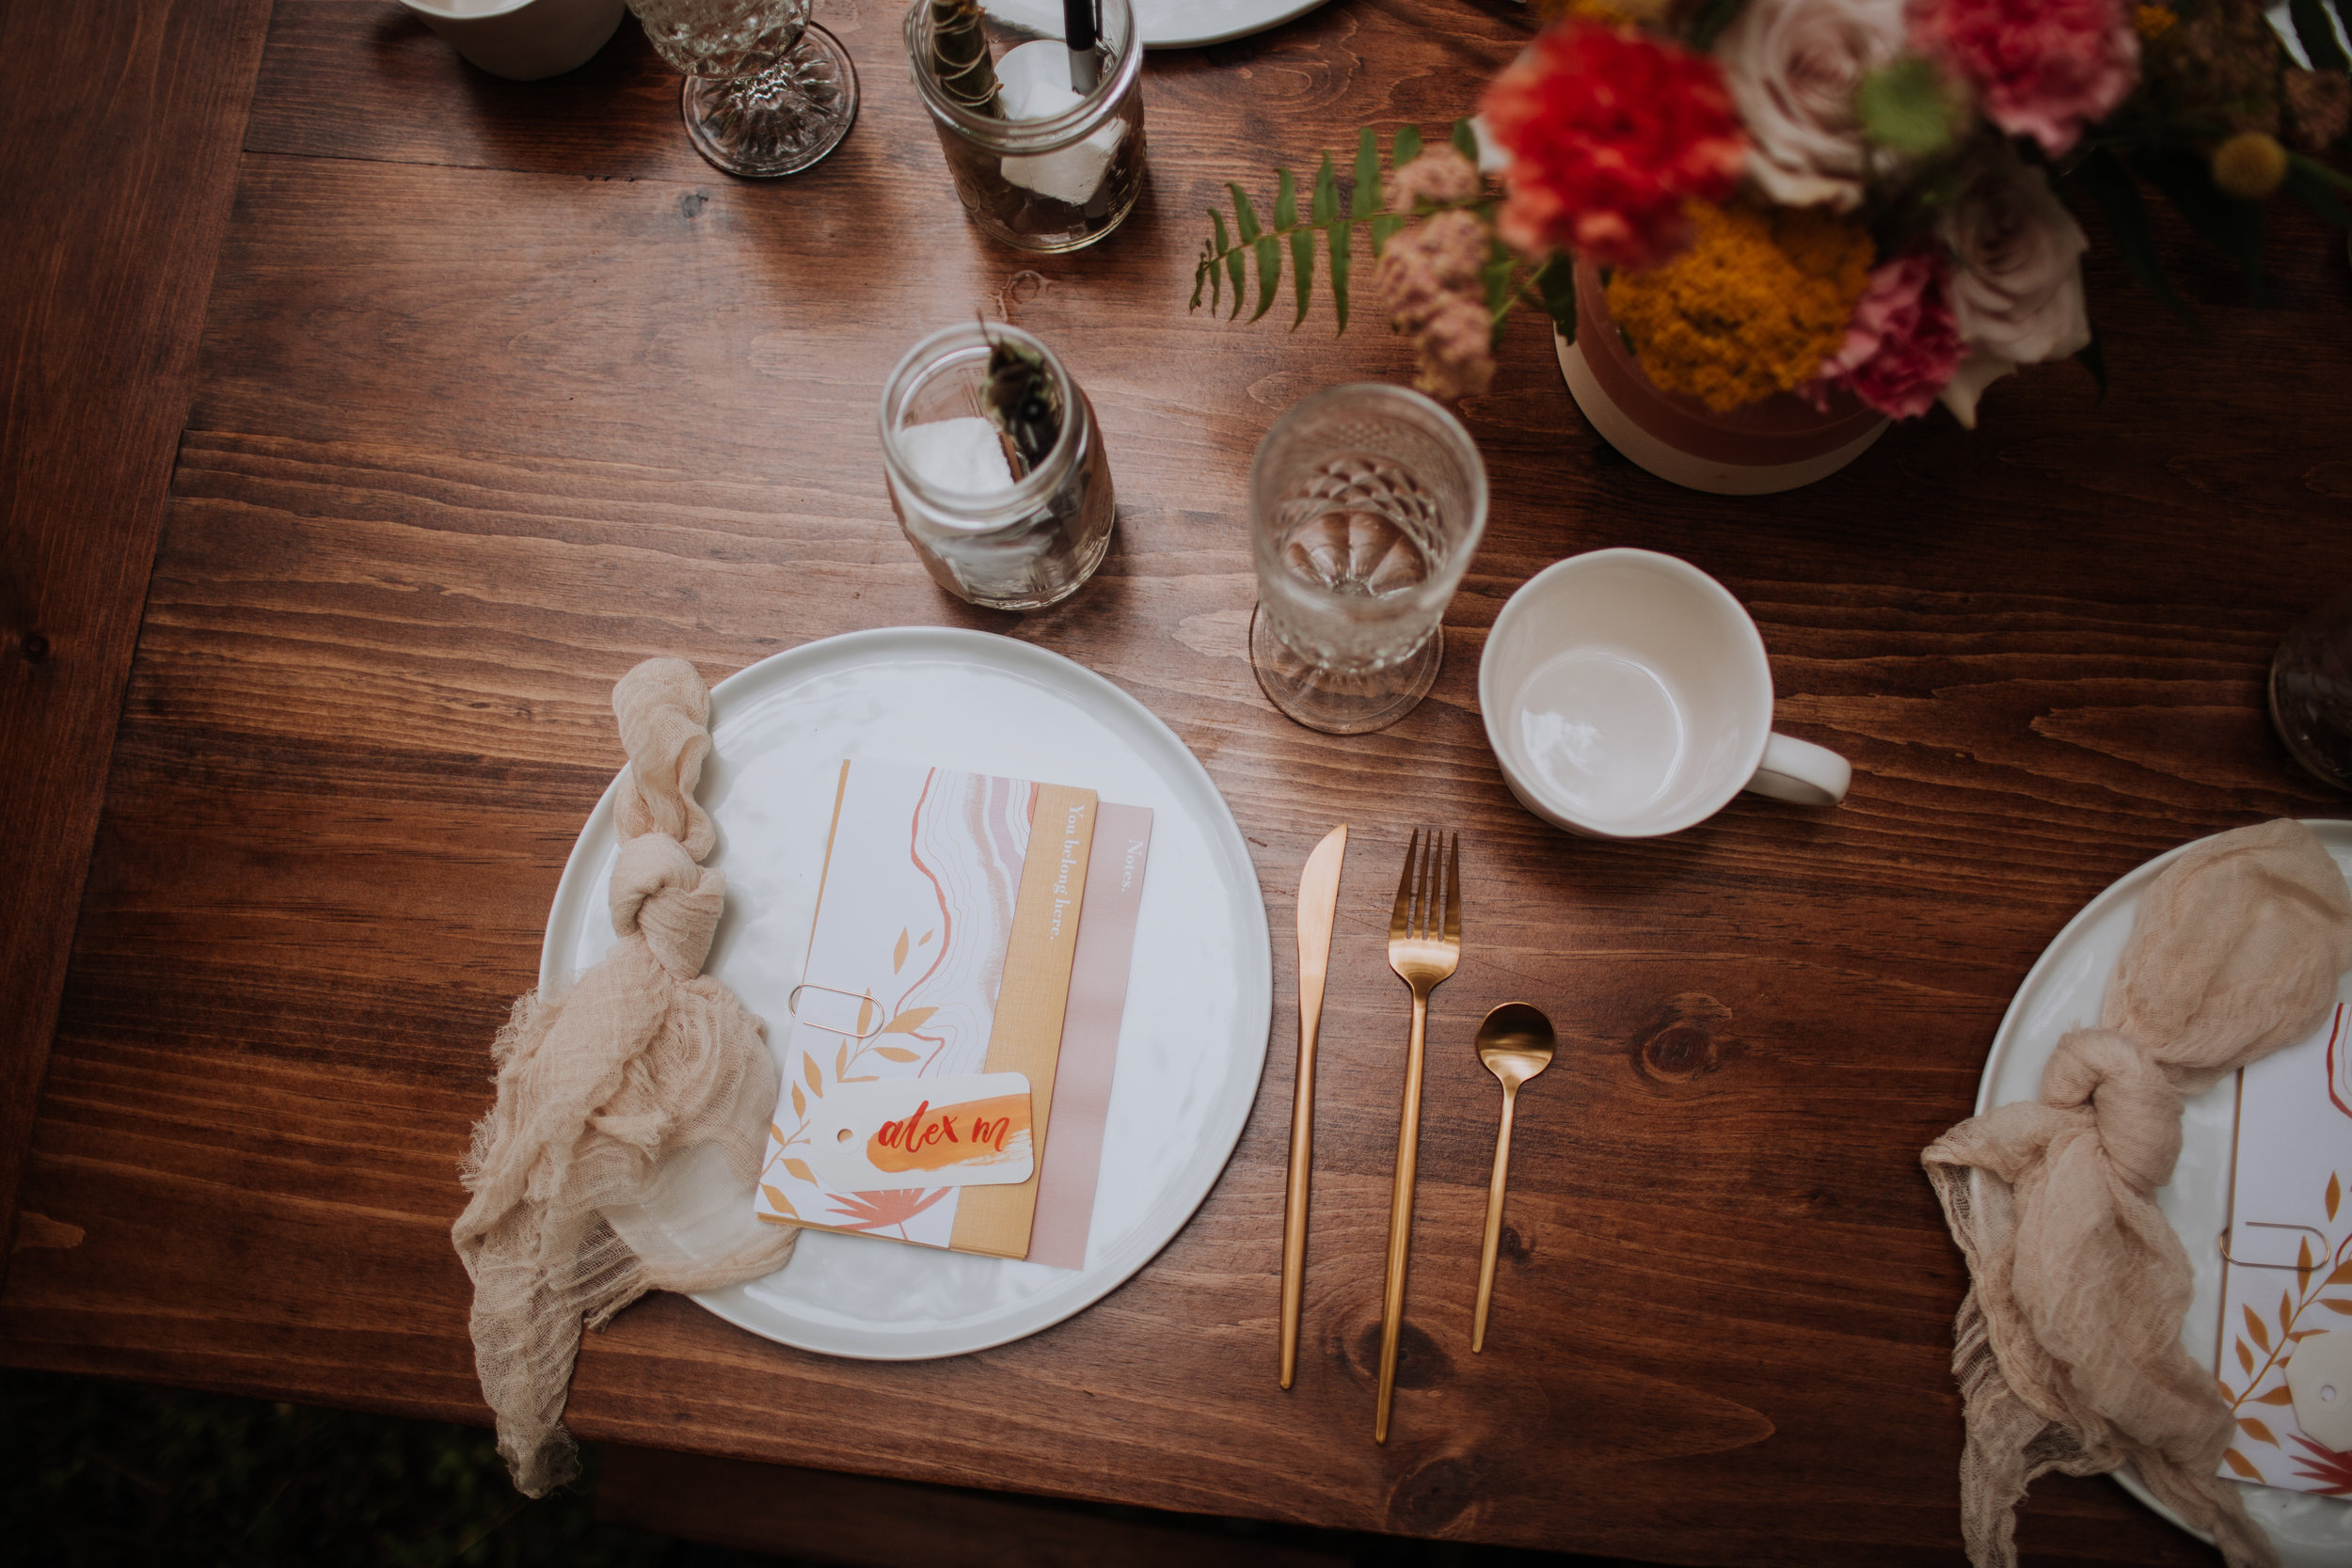 Attendees of Gather Midwest were greeted by a beautiful, personalized place setting that included a packet of information, intentional prompts, note pages, a print to take home, and gifts from our wonderful sponsors.